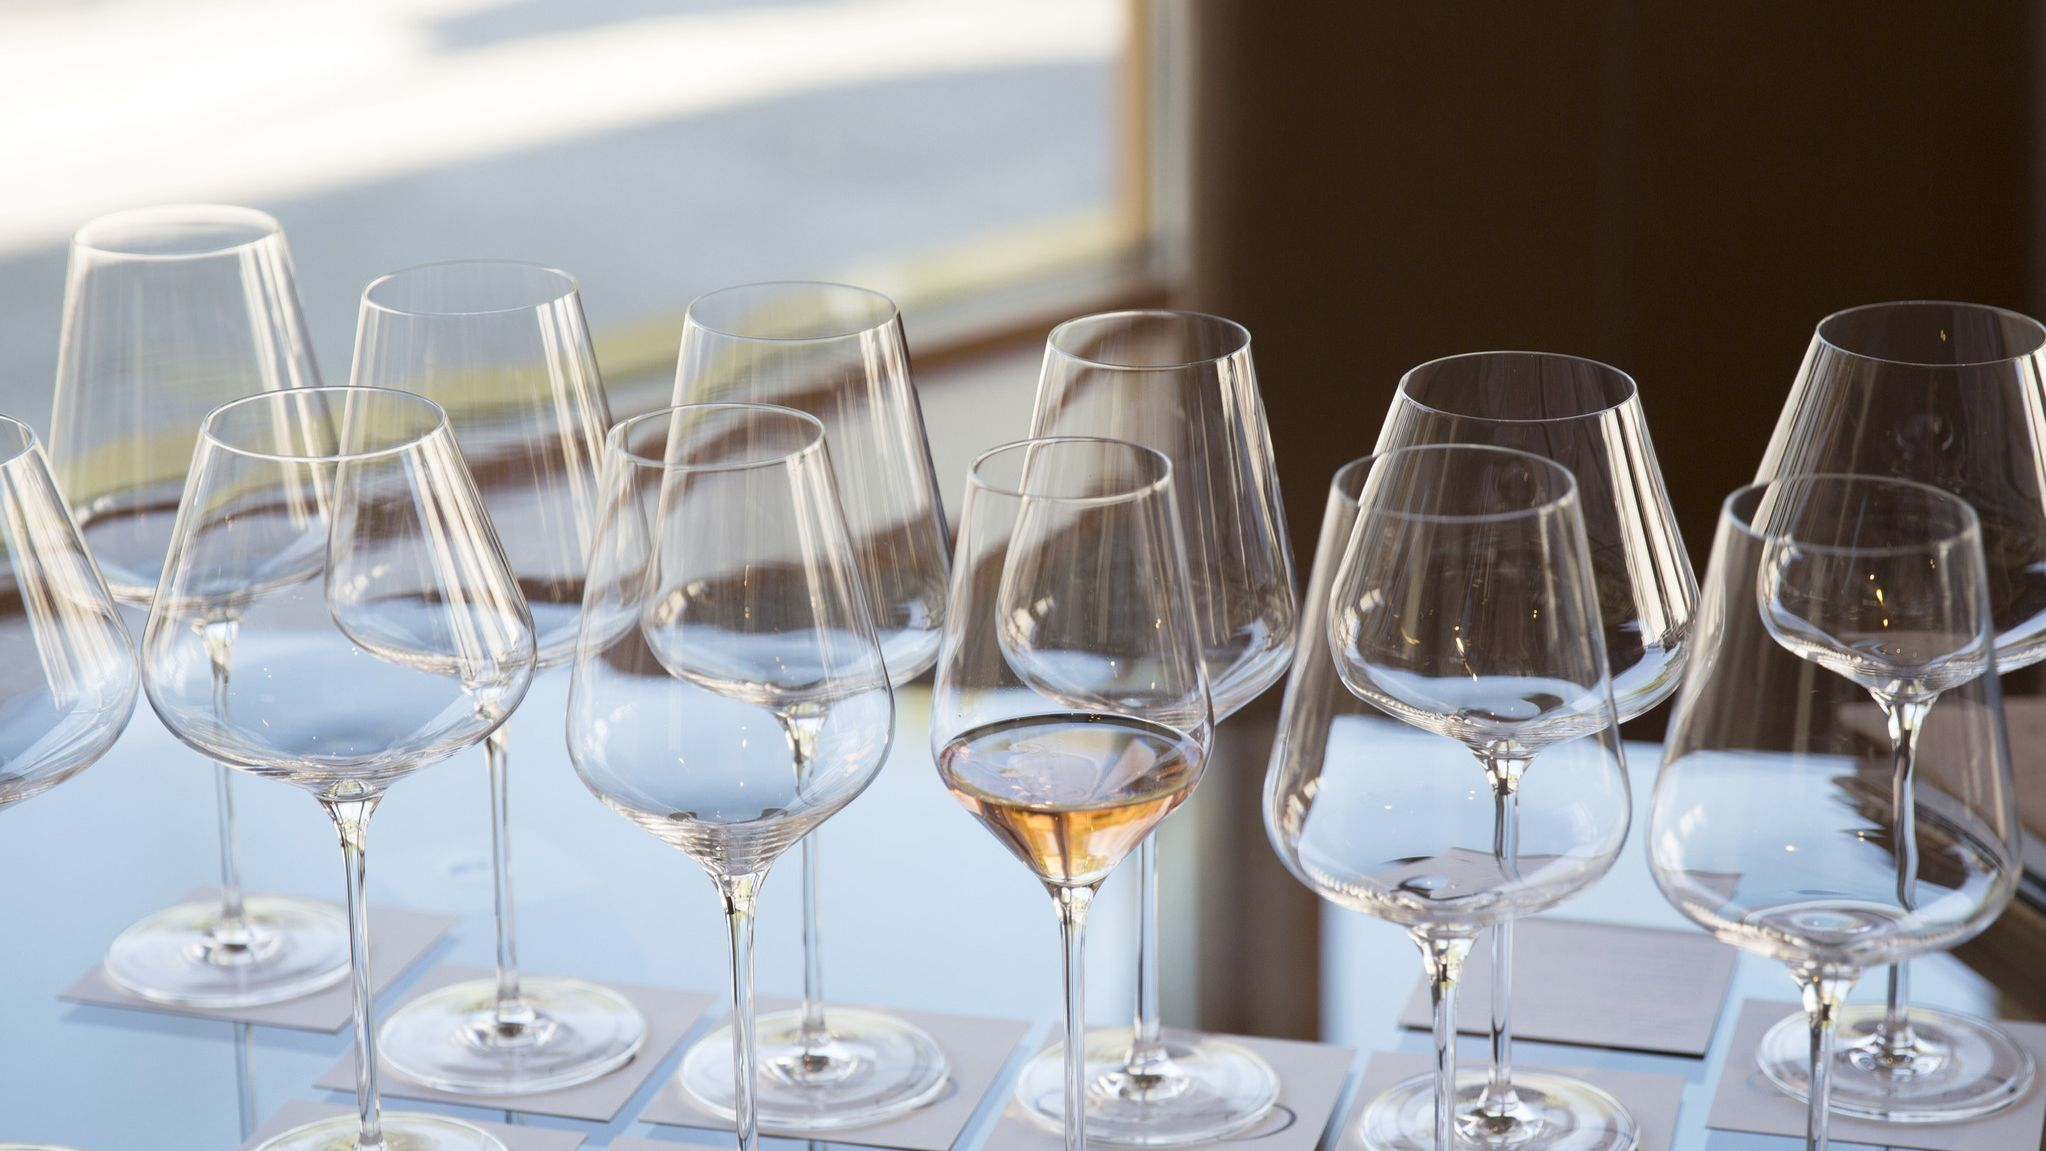 Scandal in wine world: 23 new Master Sommeliers stripped of titles after cheating discovered